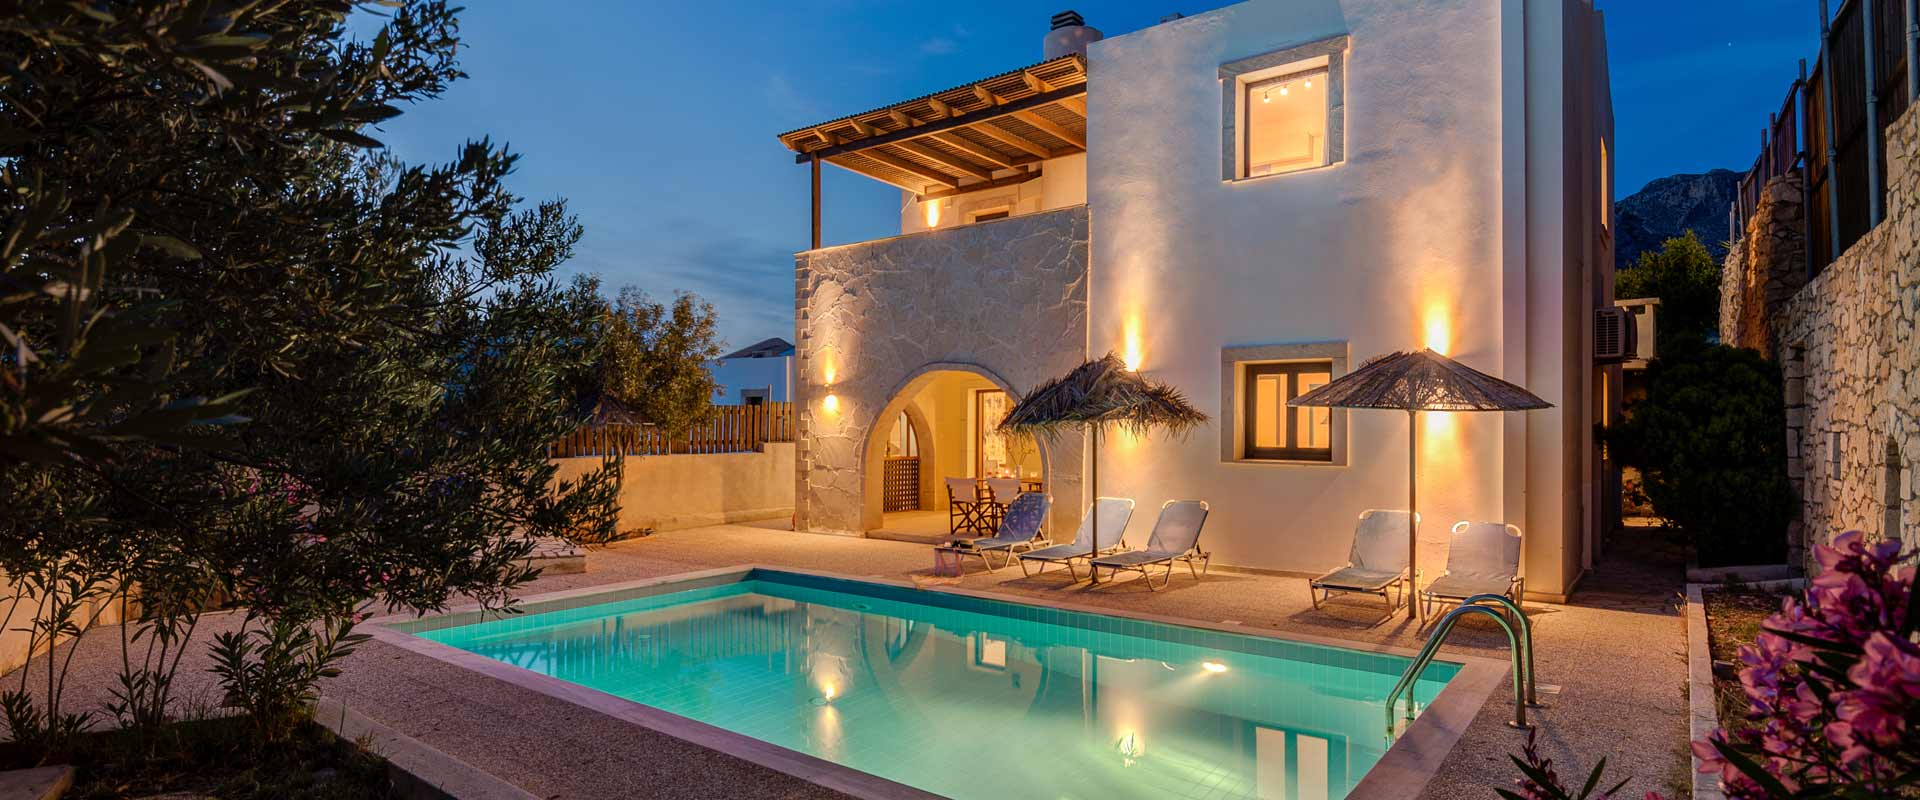 Holidays Villas Makrigialos Crete Holidays Villas And Apartments